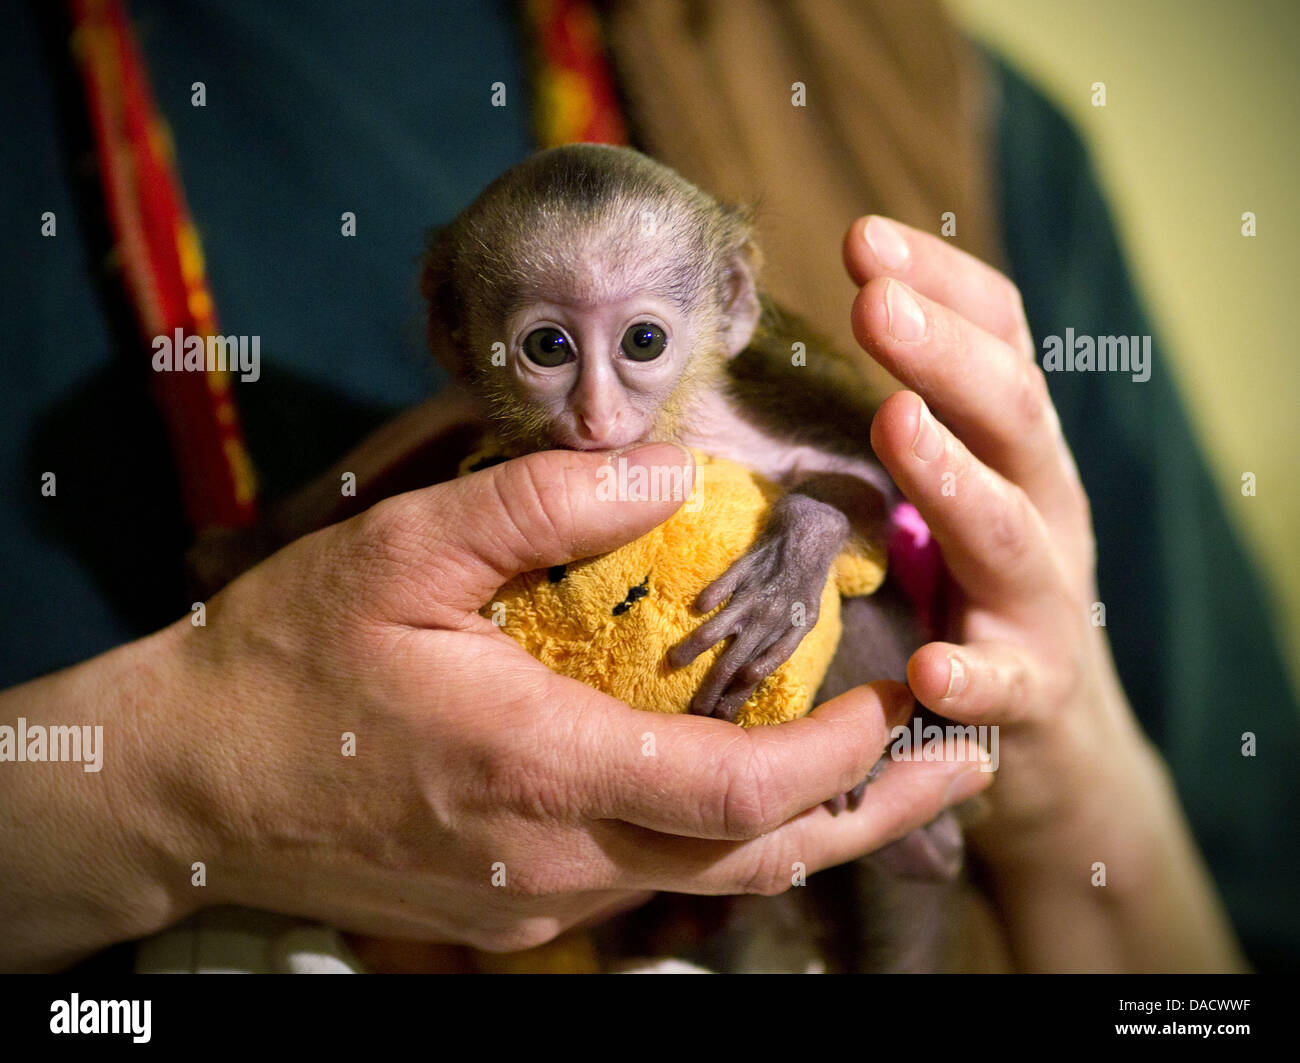 A nine-day old baby mona monkey, still wearing a diaper, sits in a zookeeper's hand at the Zoo inMagdeburg, Germany, Stock Photo